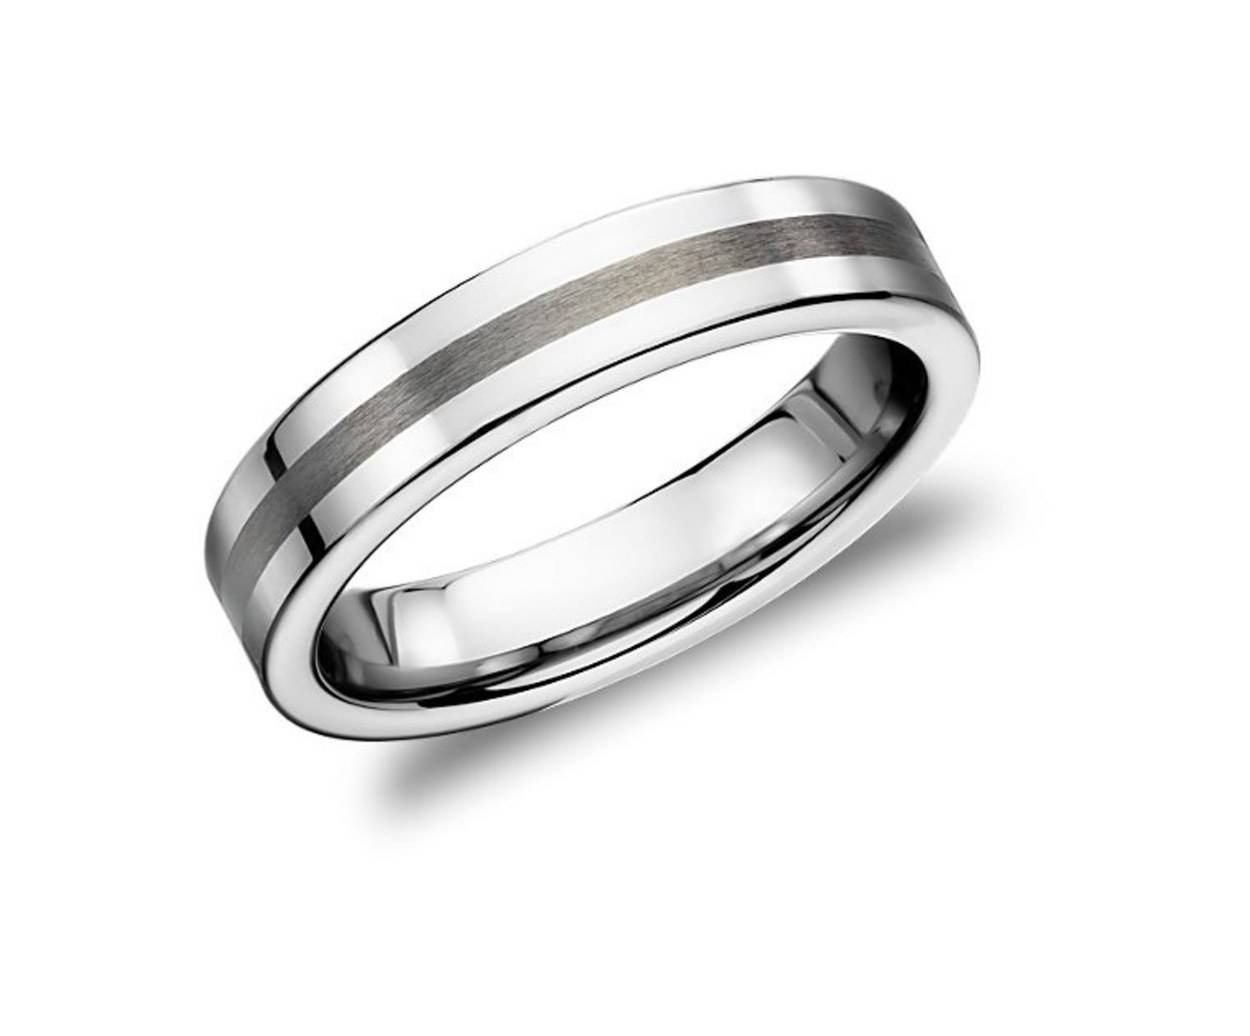 15 Men's Wedding Bands Your Groom Won't Want To Take Off | Glamour In Masculine Wedding Rings (View 1 of 15)